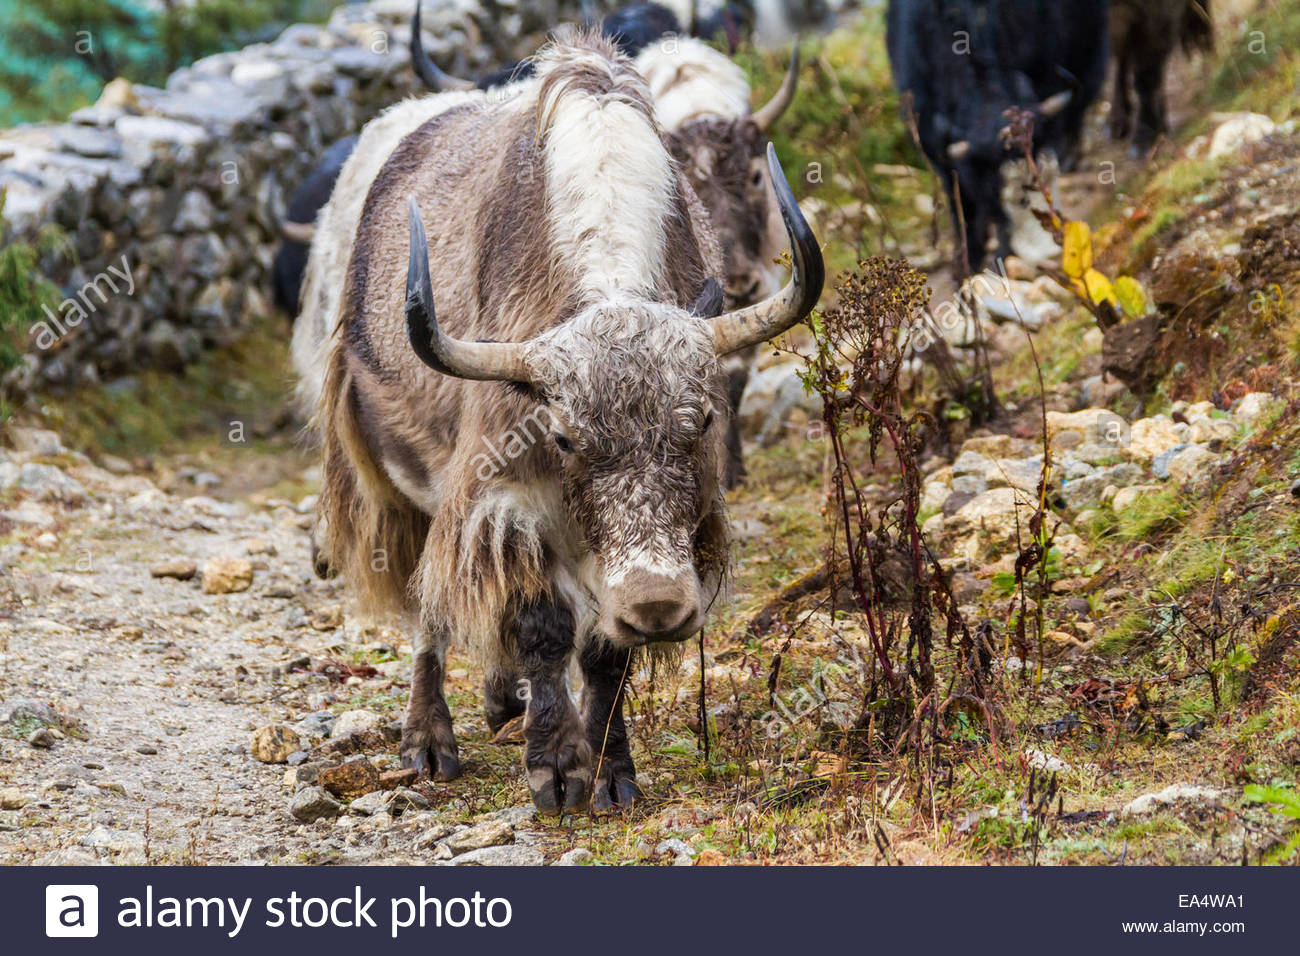 Yaks walking beside stone wall - Nepal - Stock Image